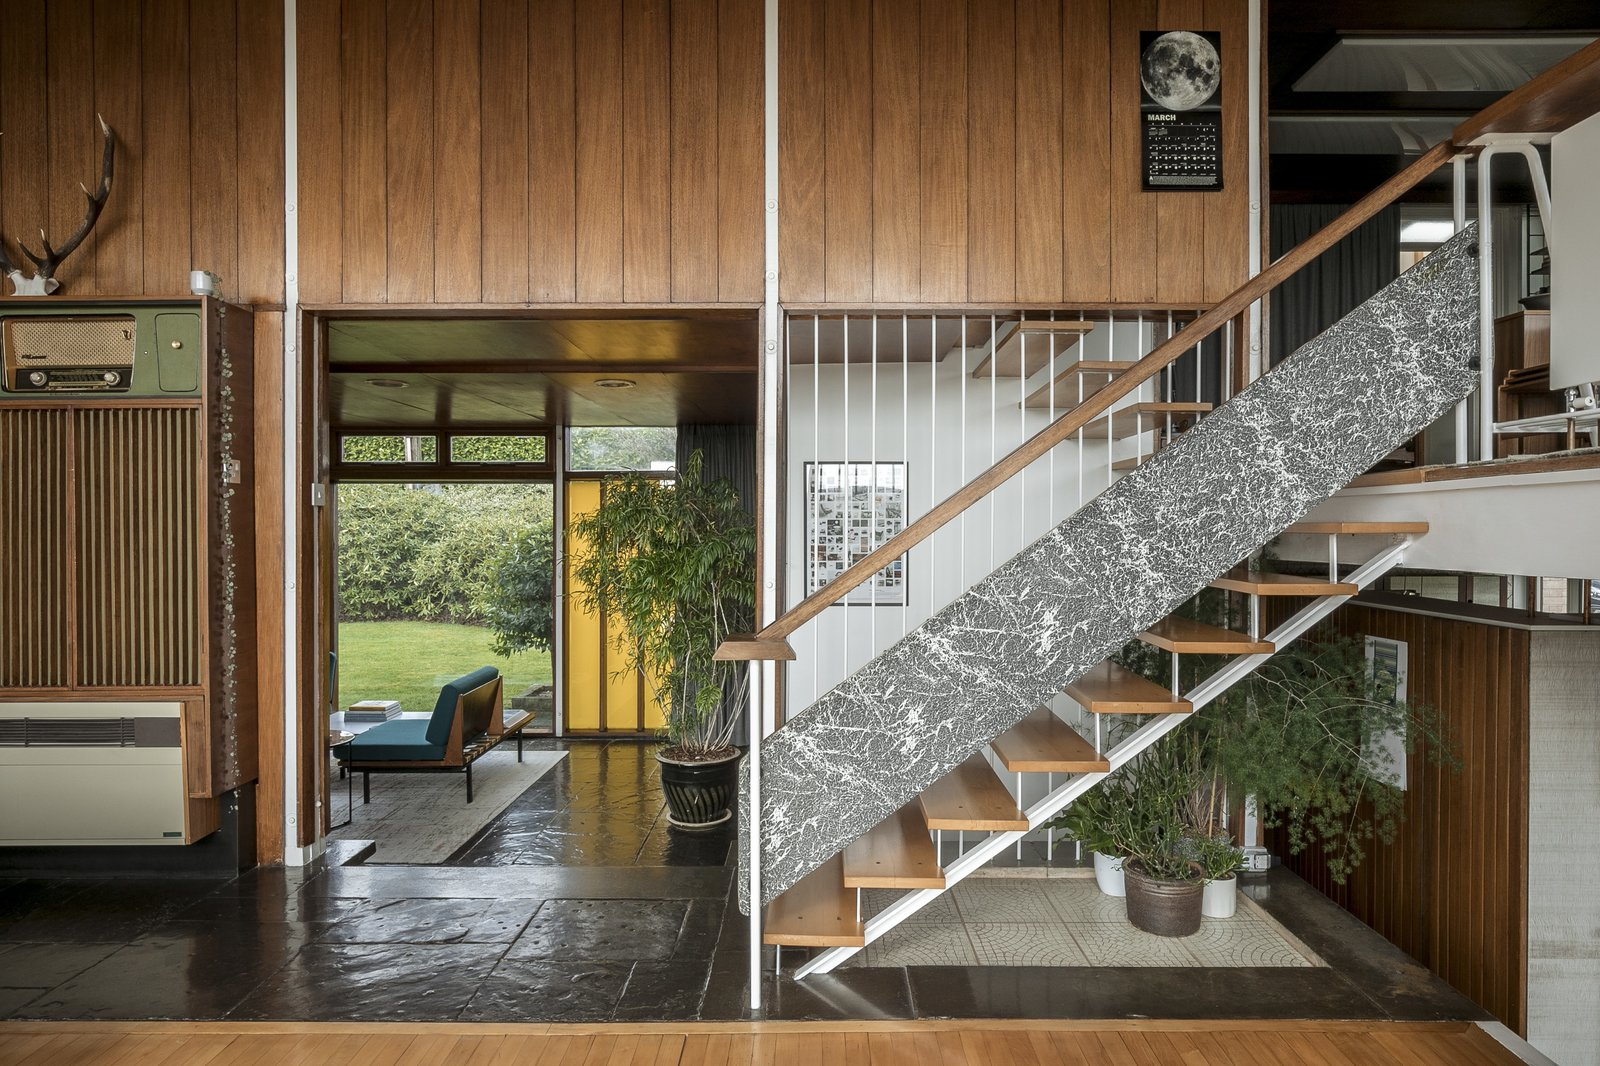 11 Wood-Wrapped Interiors That Radiate Warmth